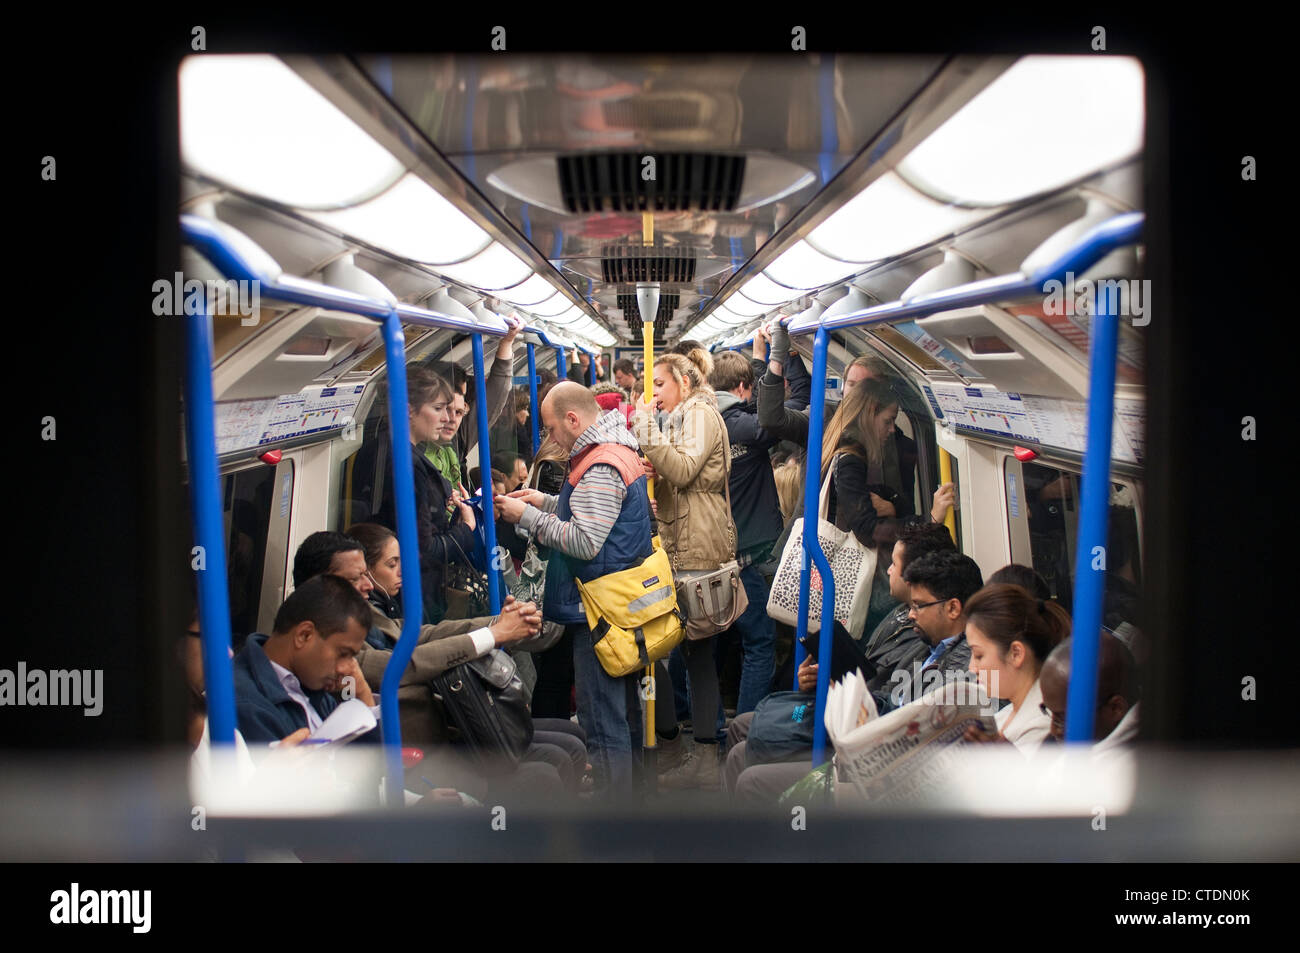 Passengers riding on the London Underground public transport network, also known as the Tube, in London, England. - Stock Image